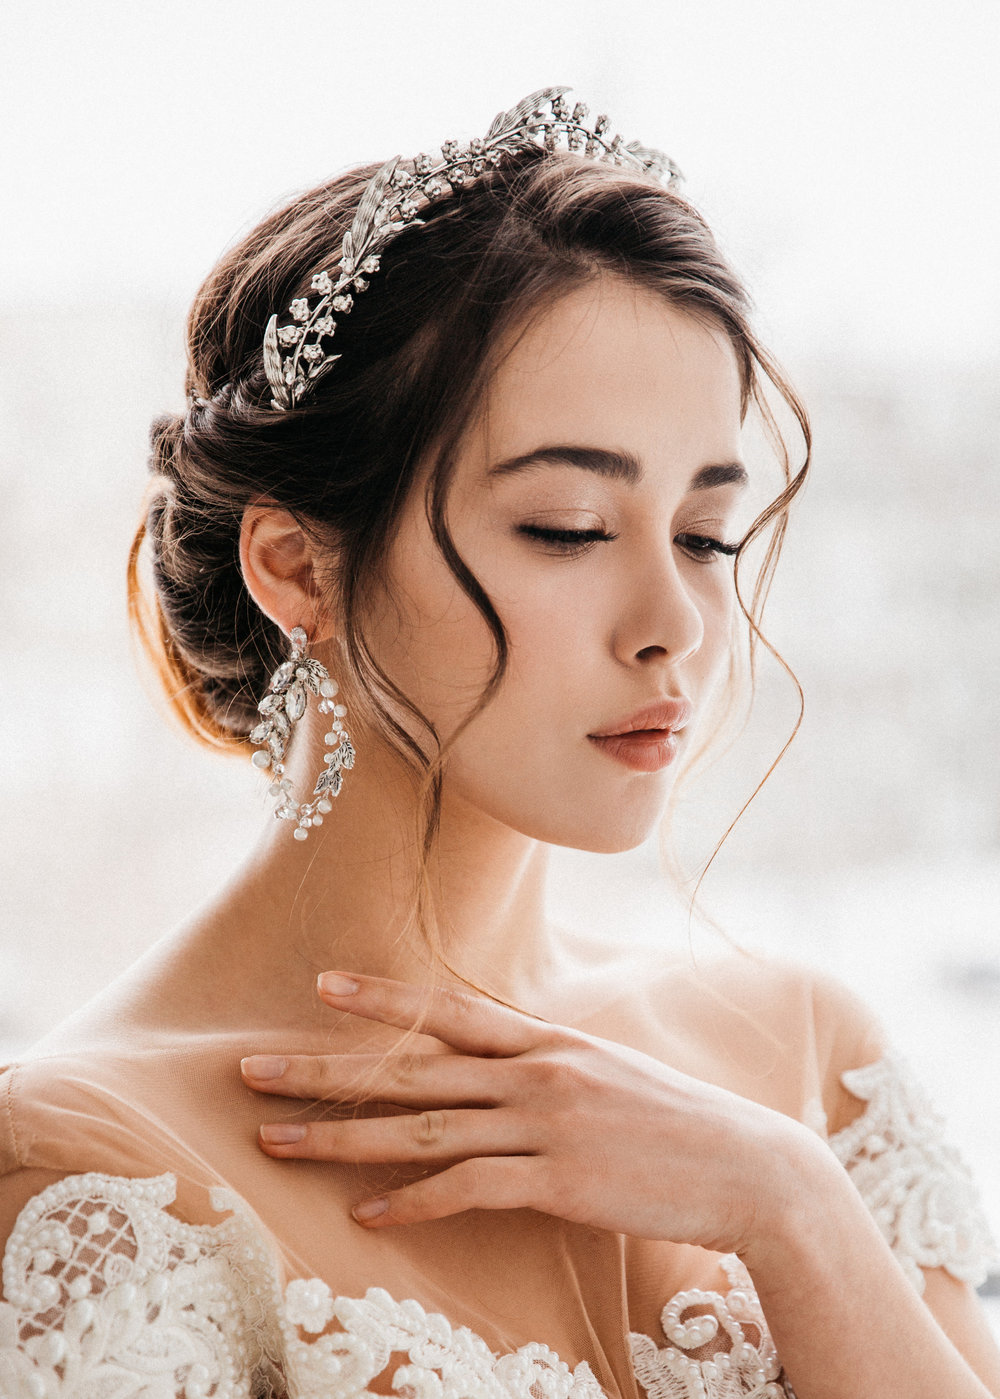 Find your perfect Bridal Hair Piece - Handmade in SwitzerlandUnique DesignPossibility to Rush OrdersFree Shipping WorldwideCustomisable OrdersFast response on your questions